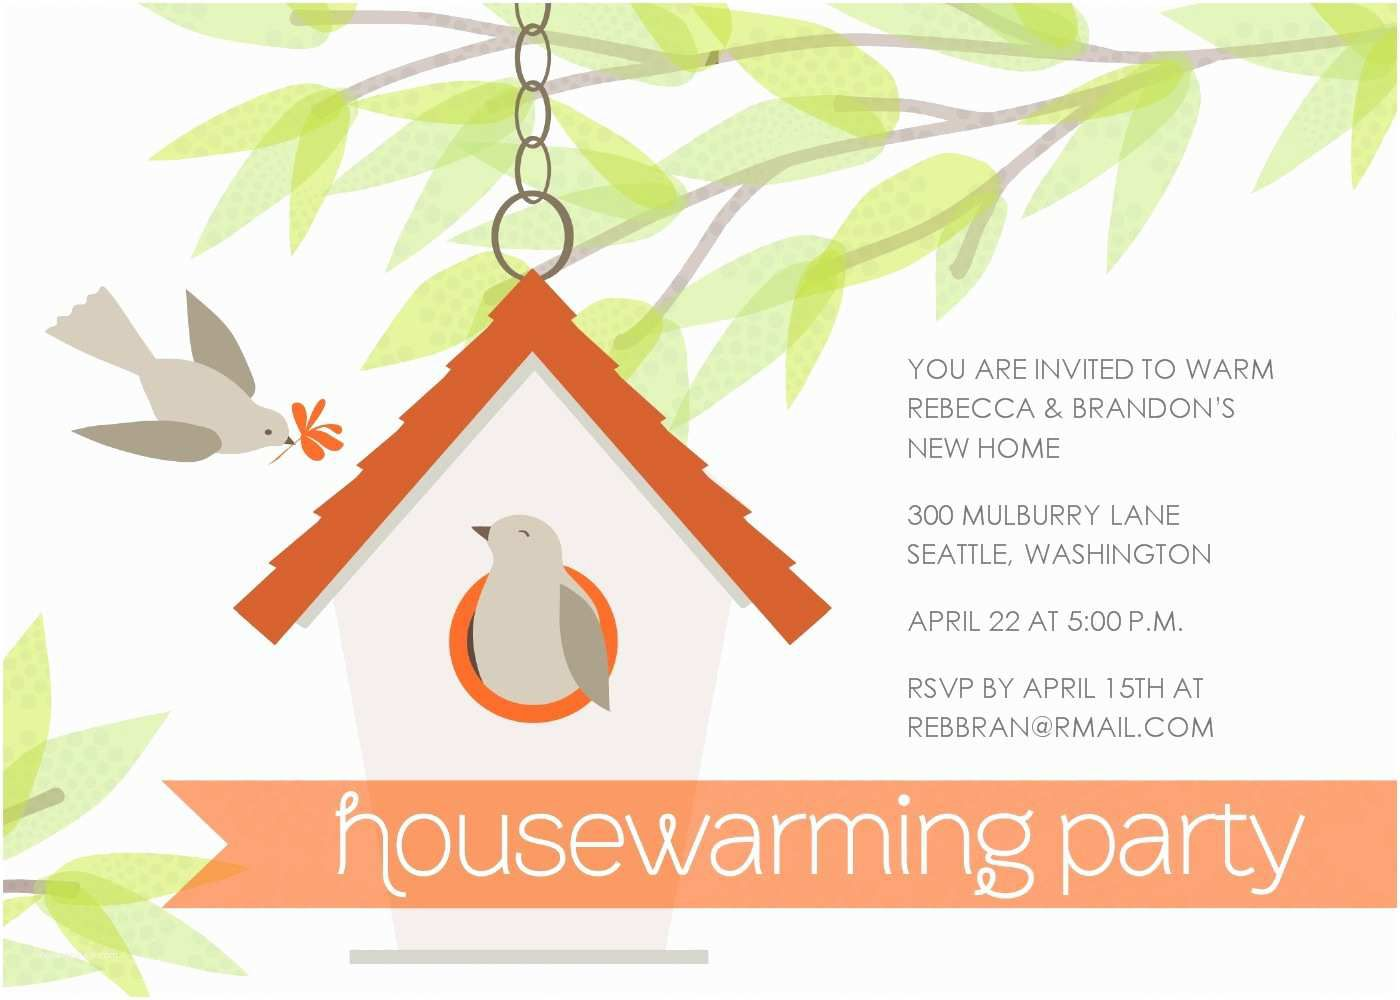 013 Stupendou Housewarming Party Invitation Template High Definition  Templates Free Download CardFull